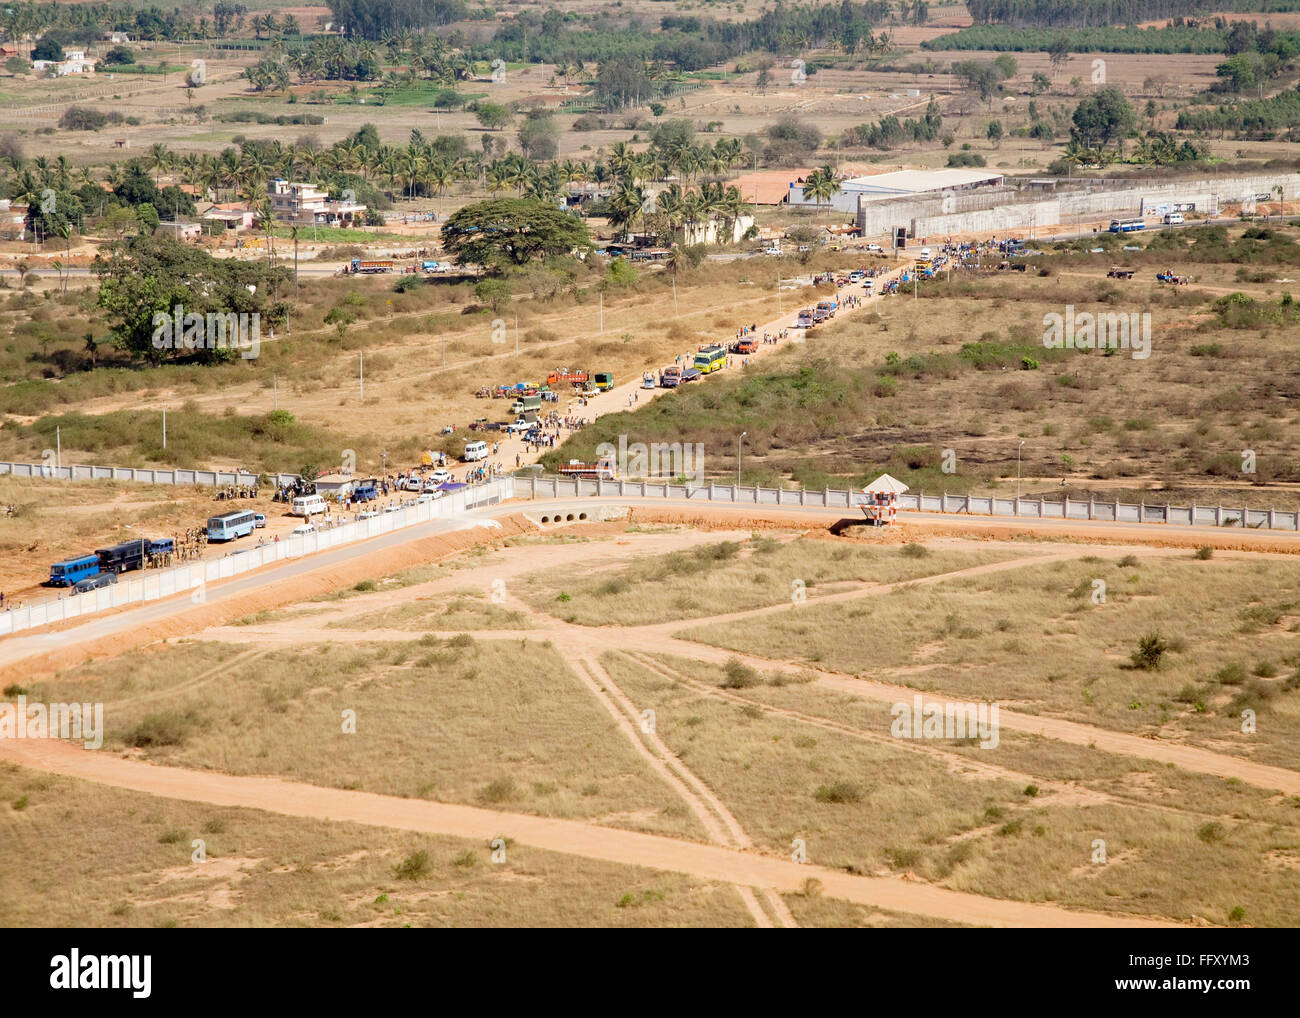 Graphical look of land from kingfisher airbus - Stock Image